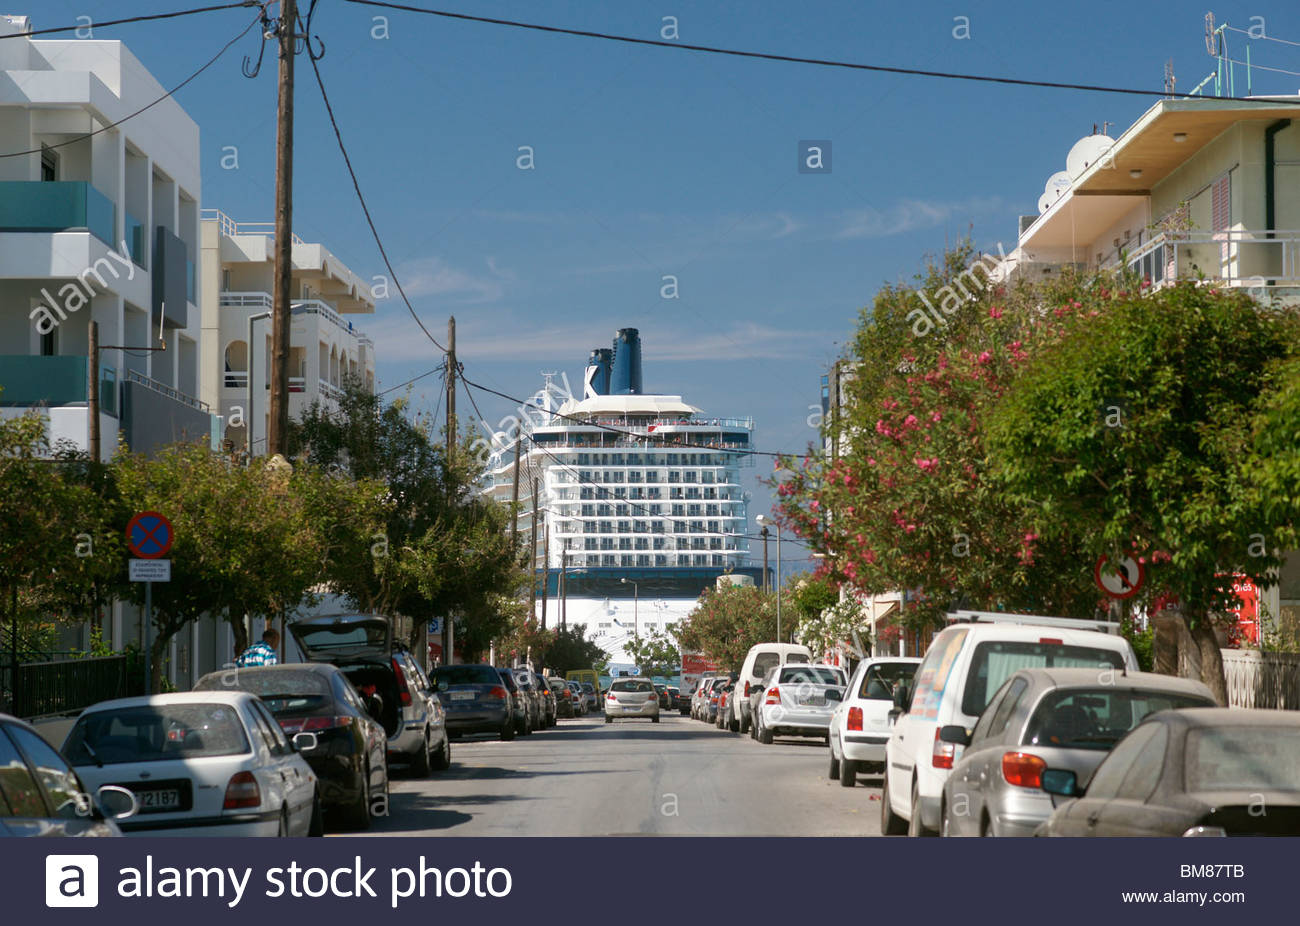 CRUISE liner parked in Greece - Stock Image